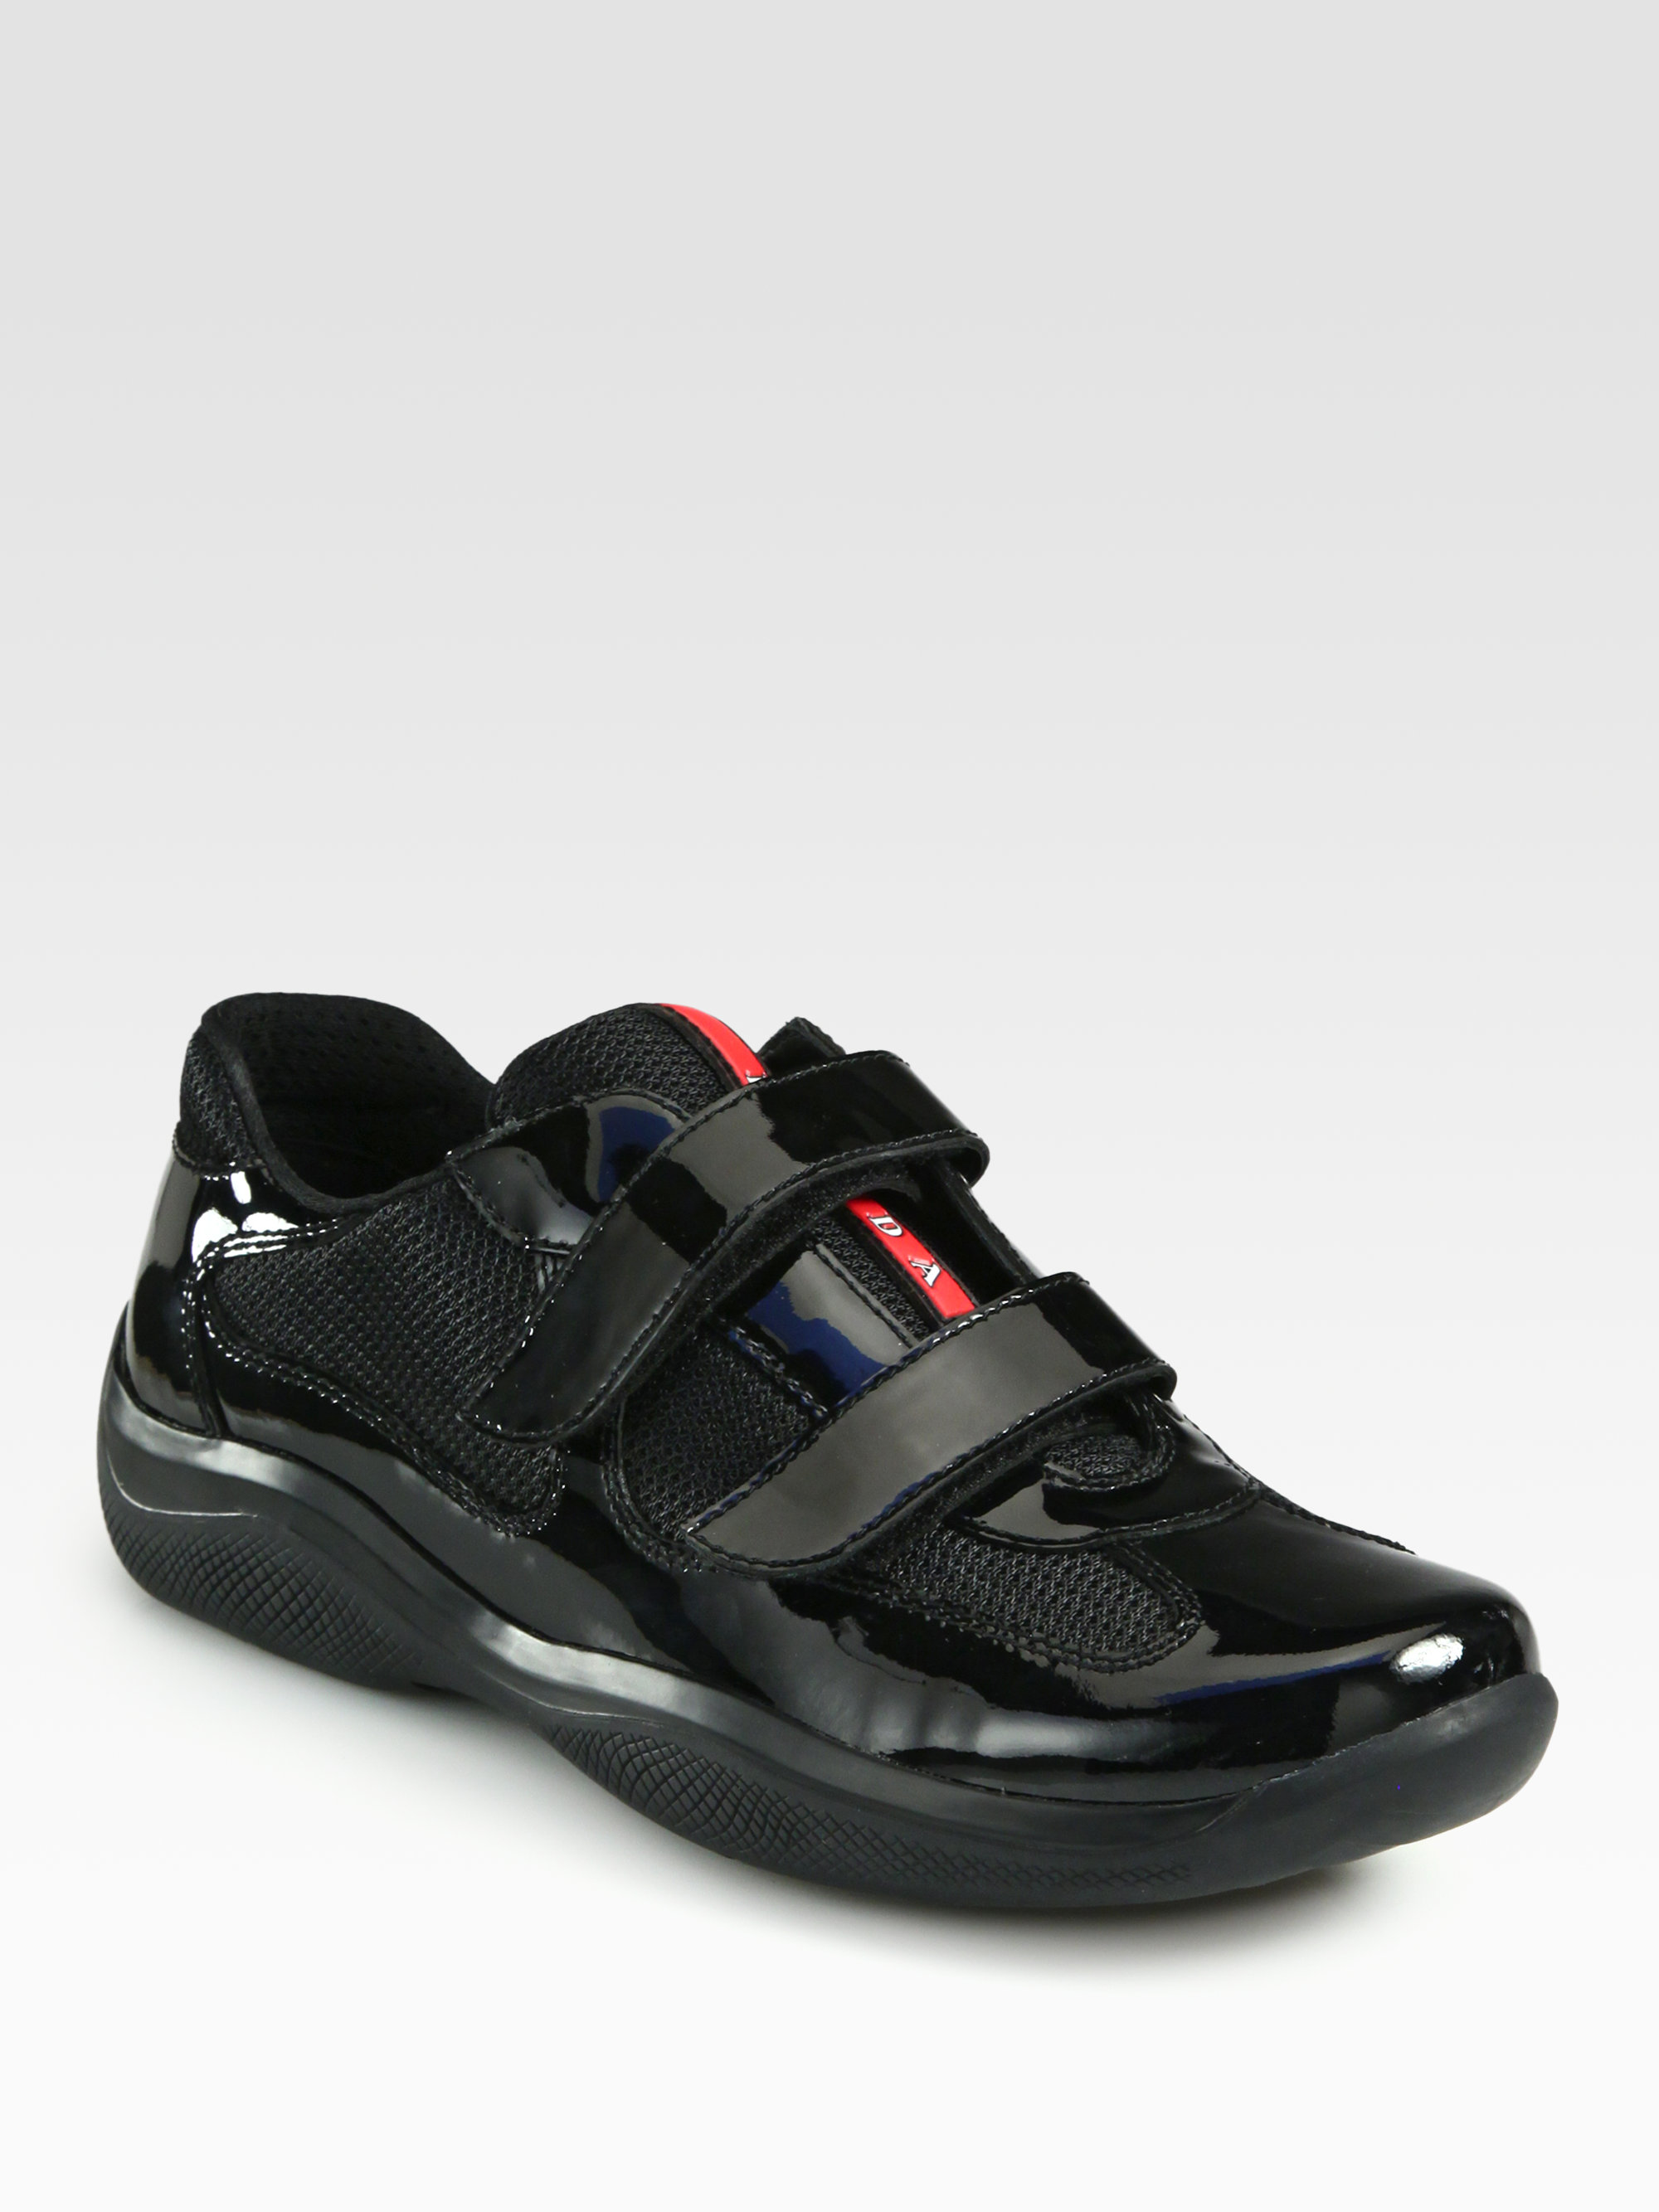 Velco Mens Shoes